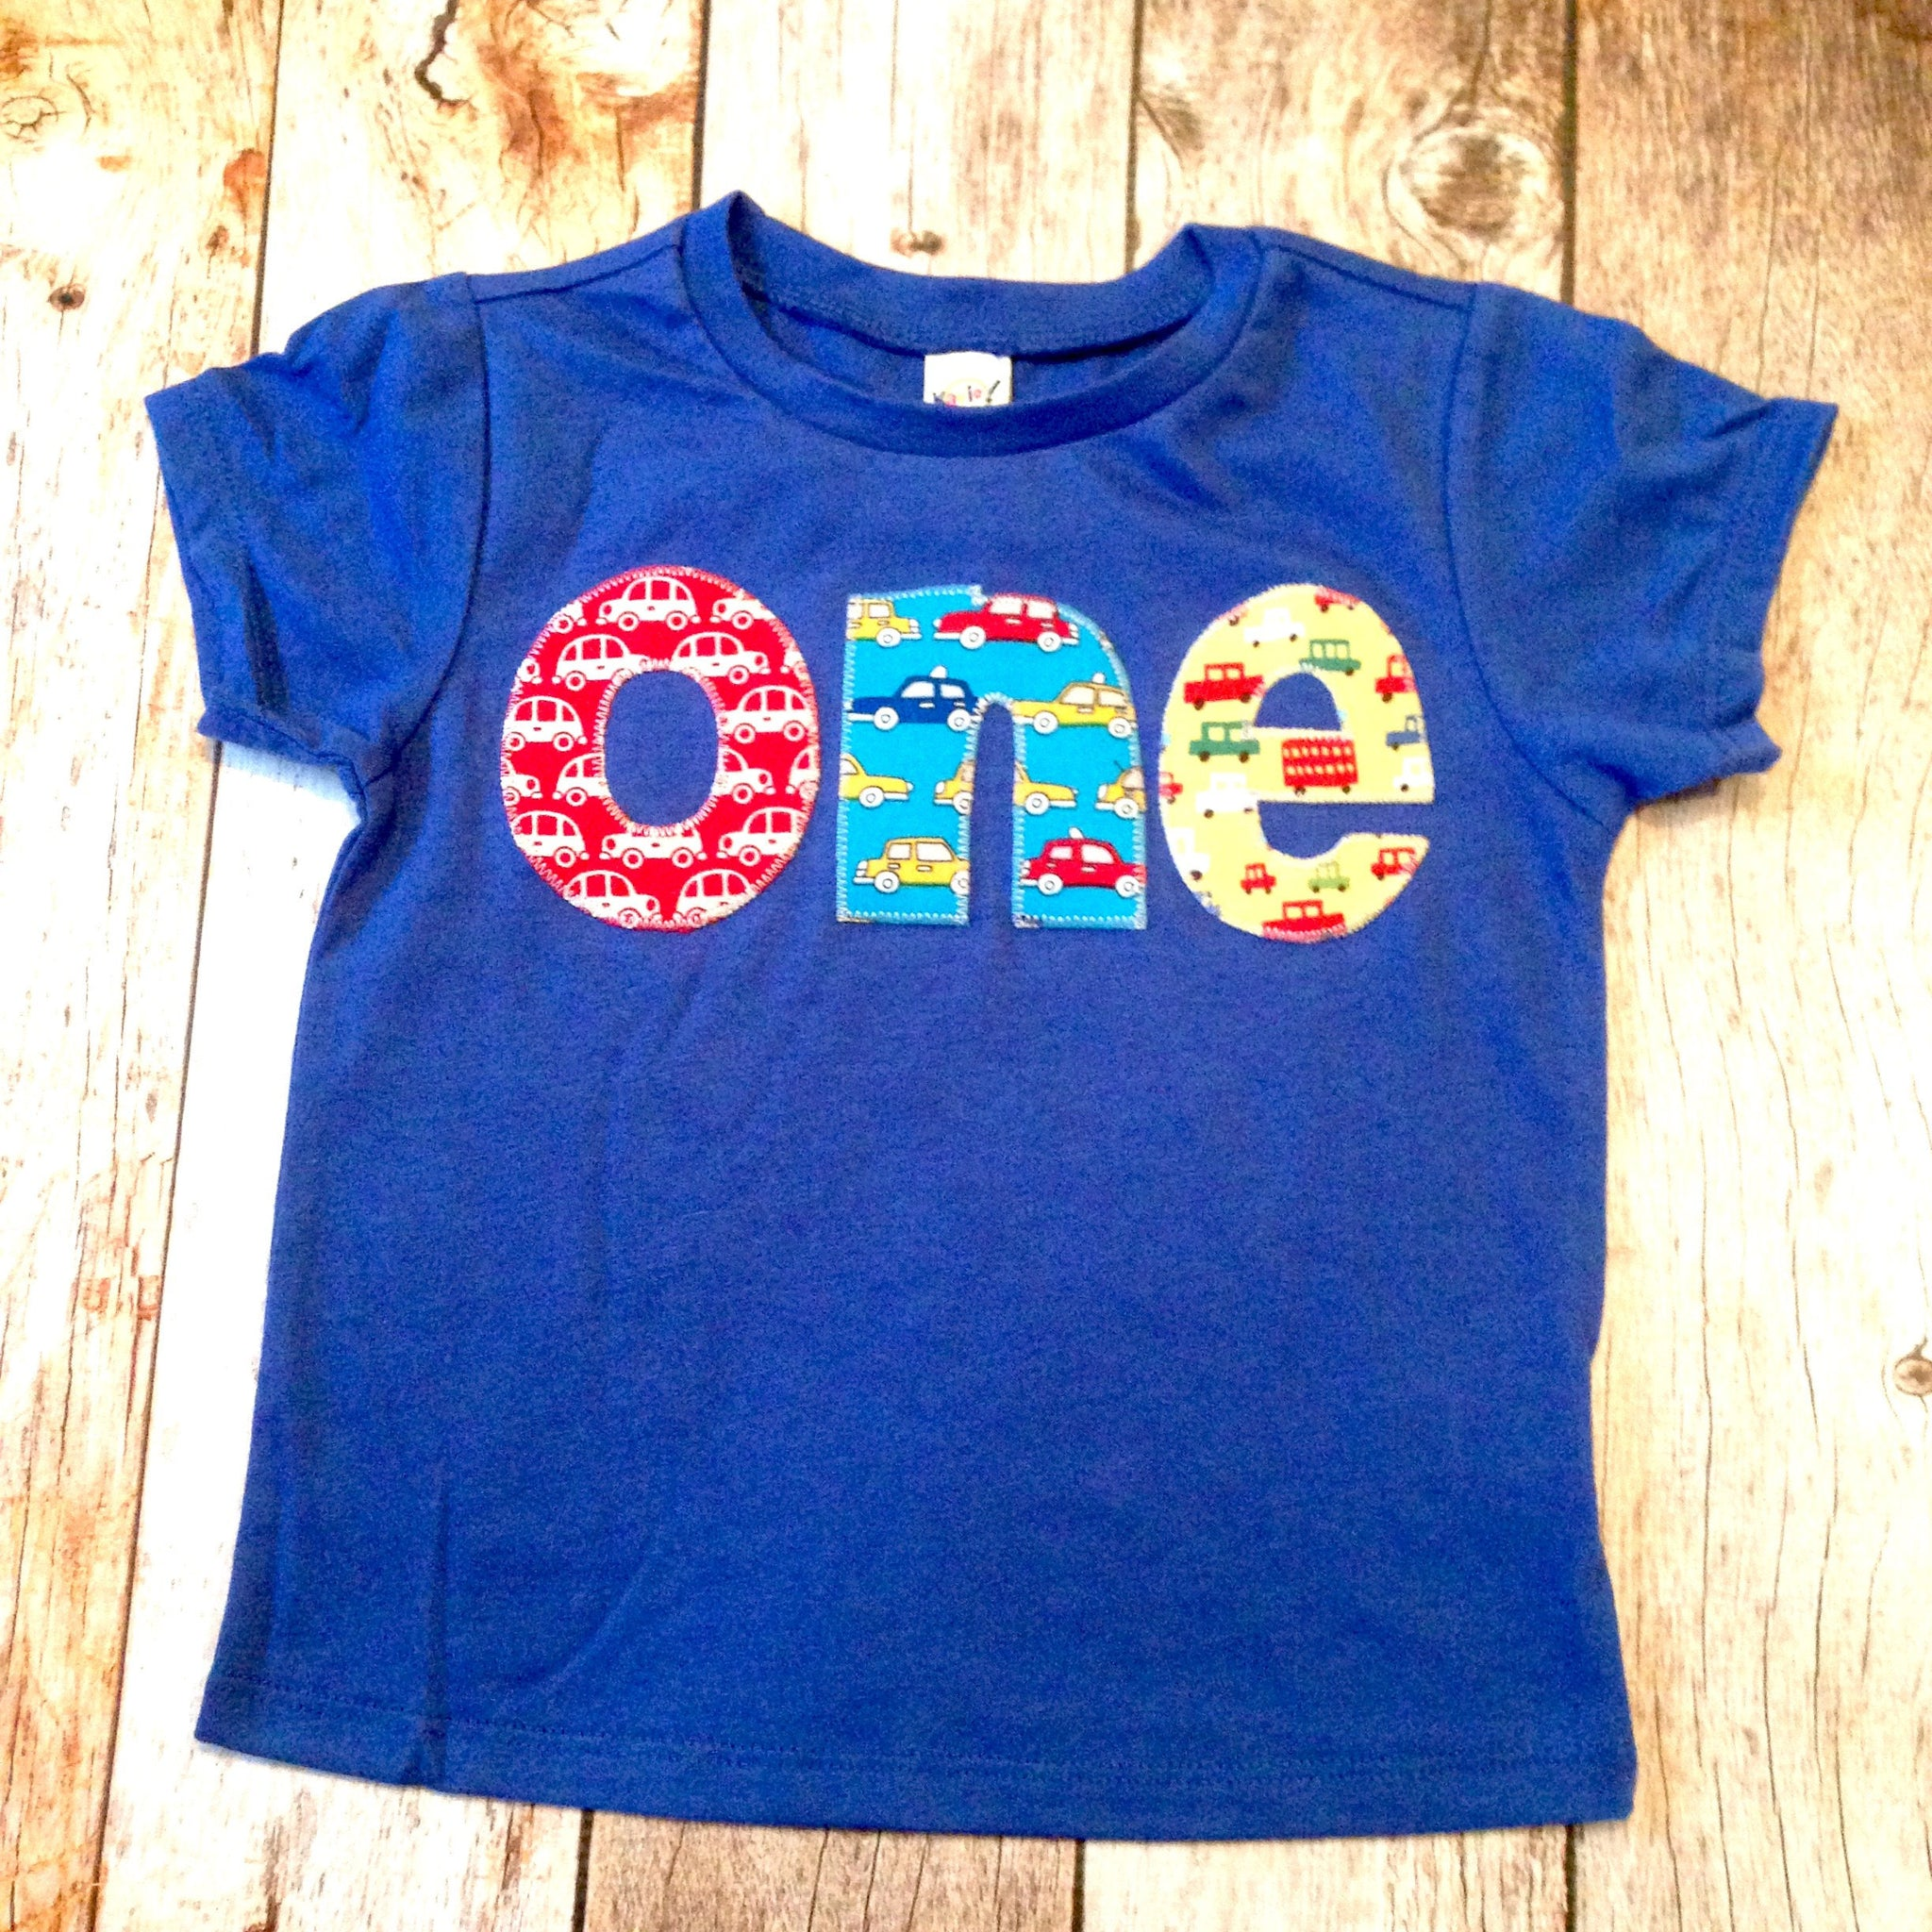 Blue or red cars 1st Birthday Shirt one shirt triblend indigo red blue and yellow cars trucks for boys 1 year Birthday Shirt primary colors